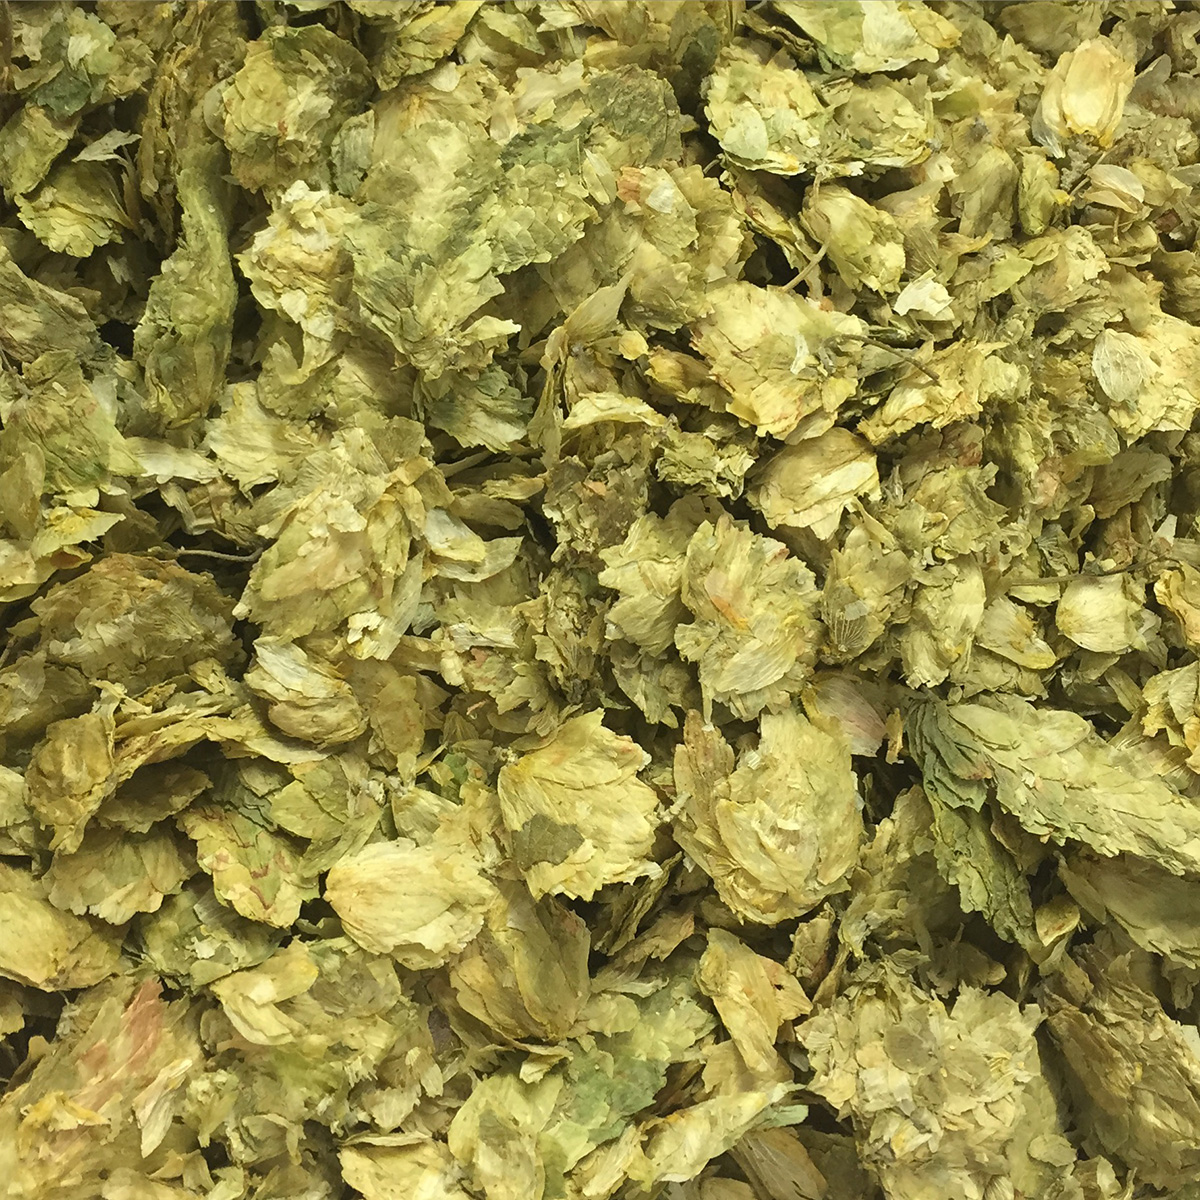 Hops have arrived!